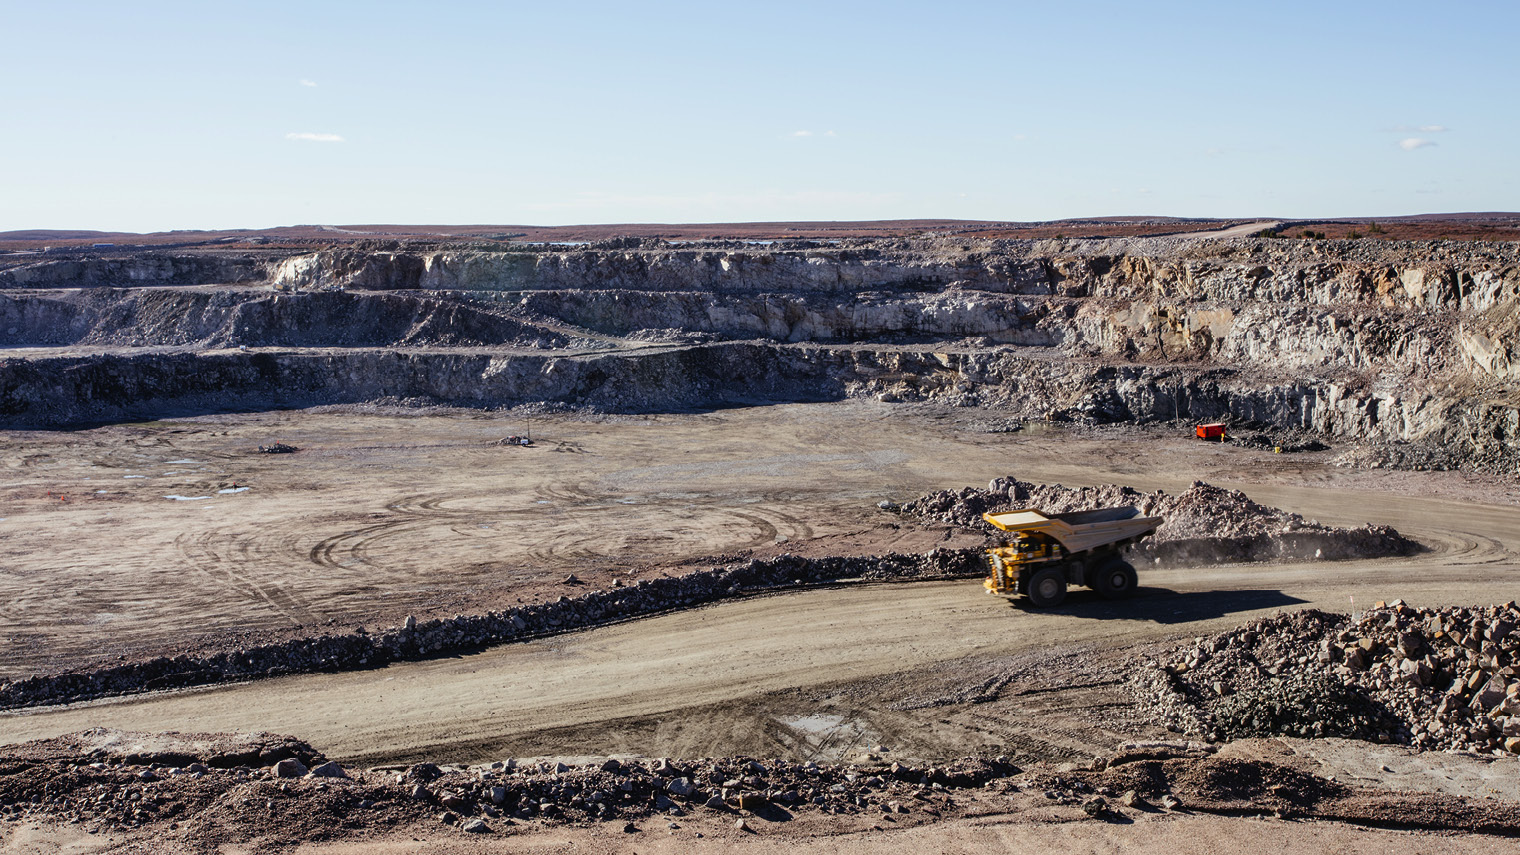 Gahcho Kué is a massive open pit mine, a rare prospect in an industry that has had to dig deep, expensive mines to find diamonds